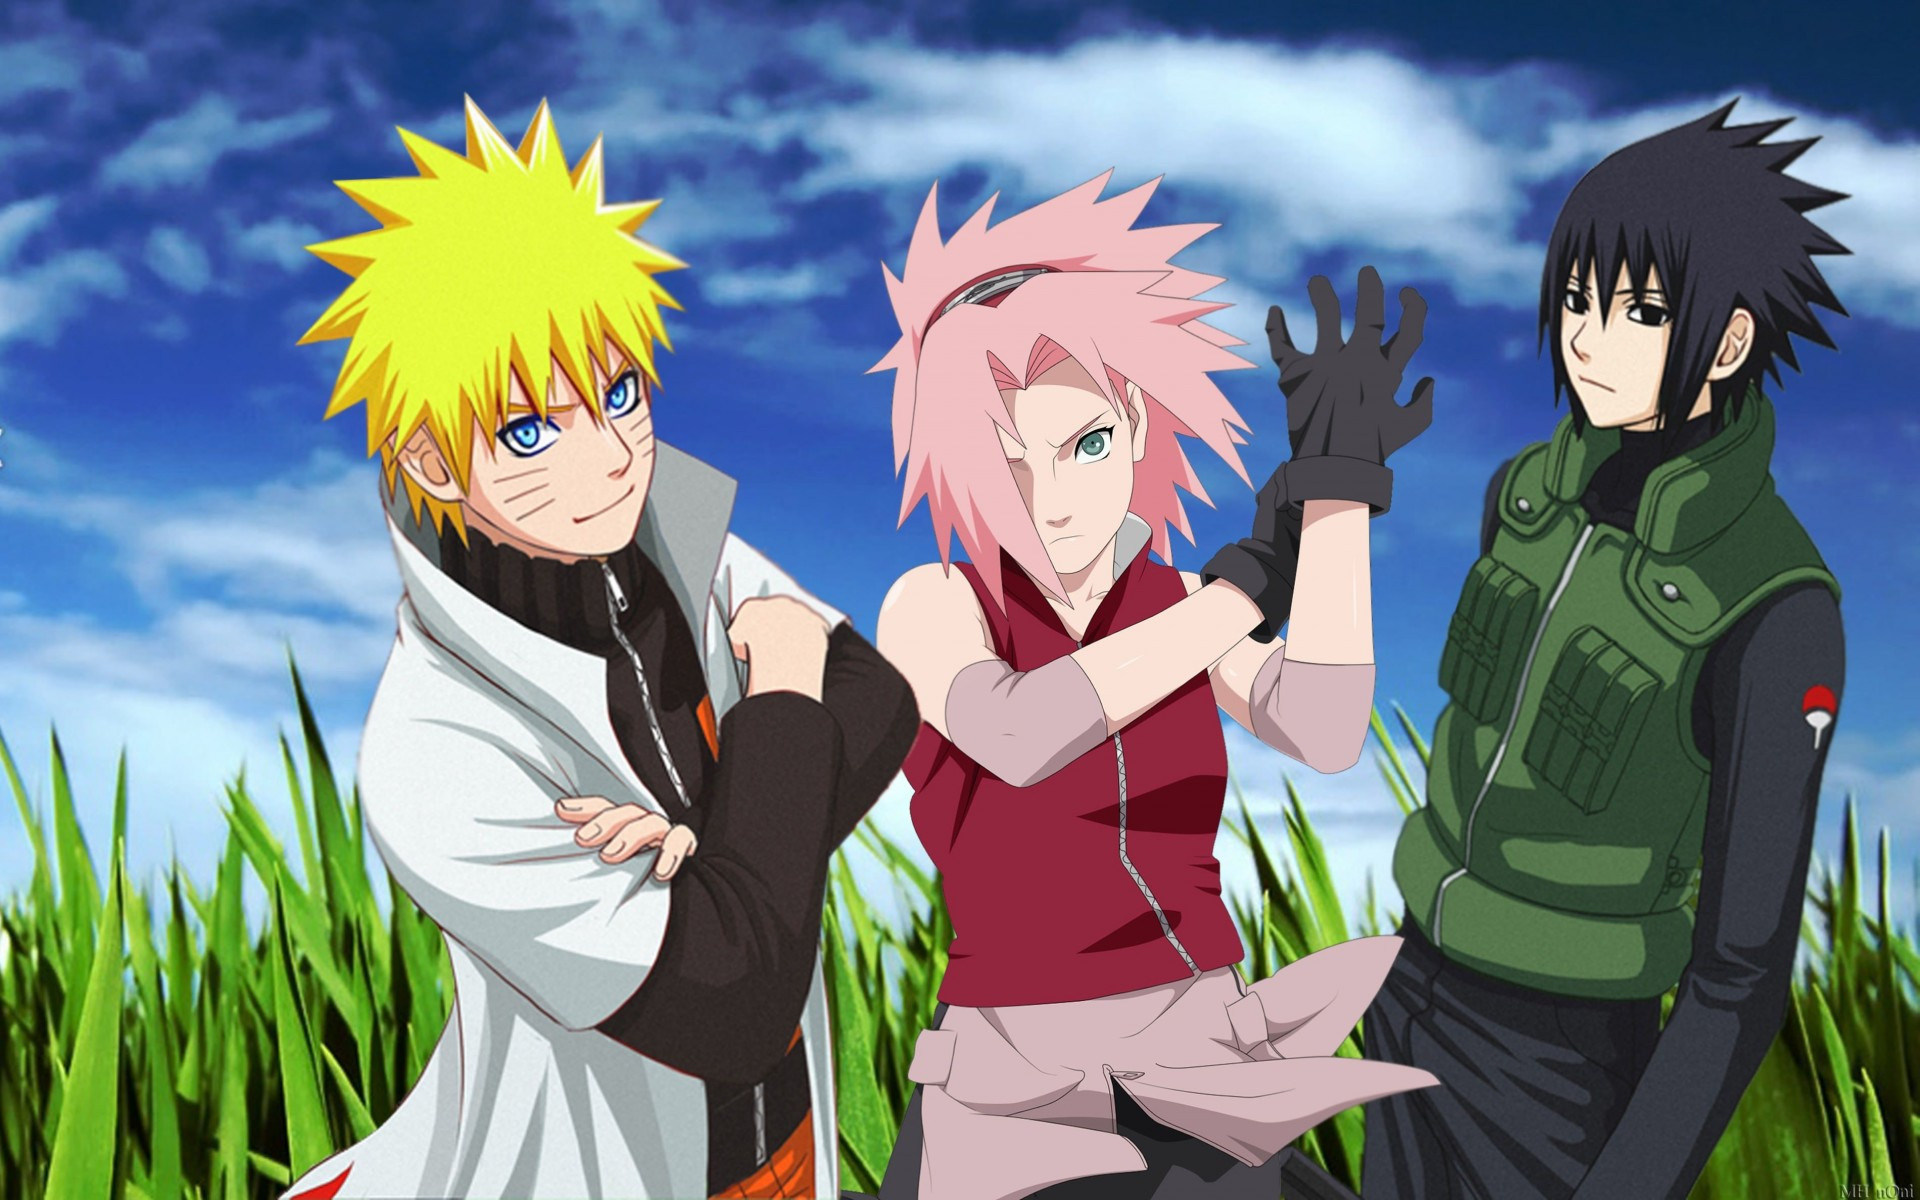 Naruto, Sakura and Sasuke Wallpaper for Desktop 1920x1200